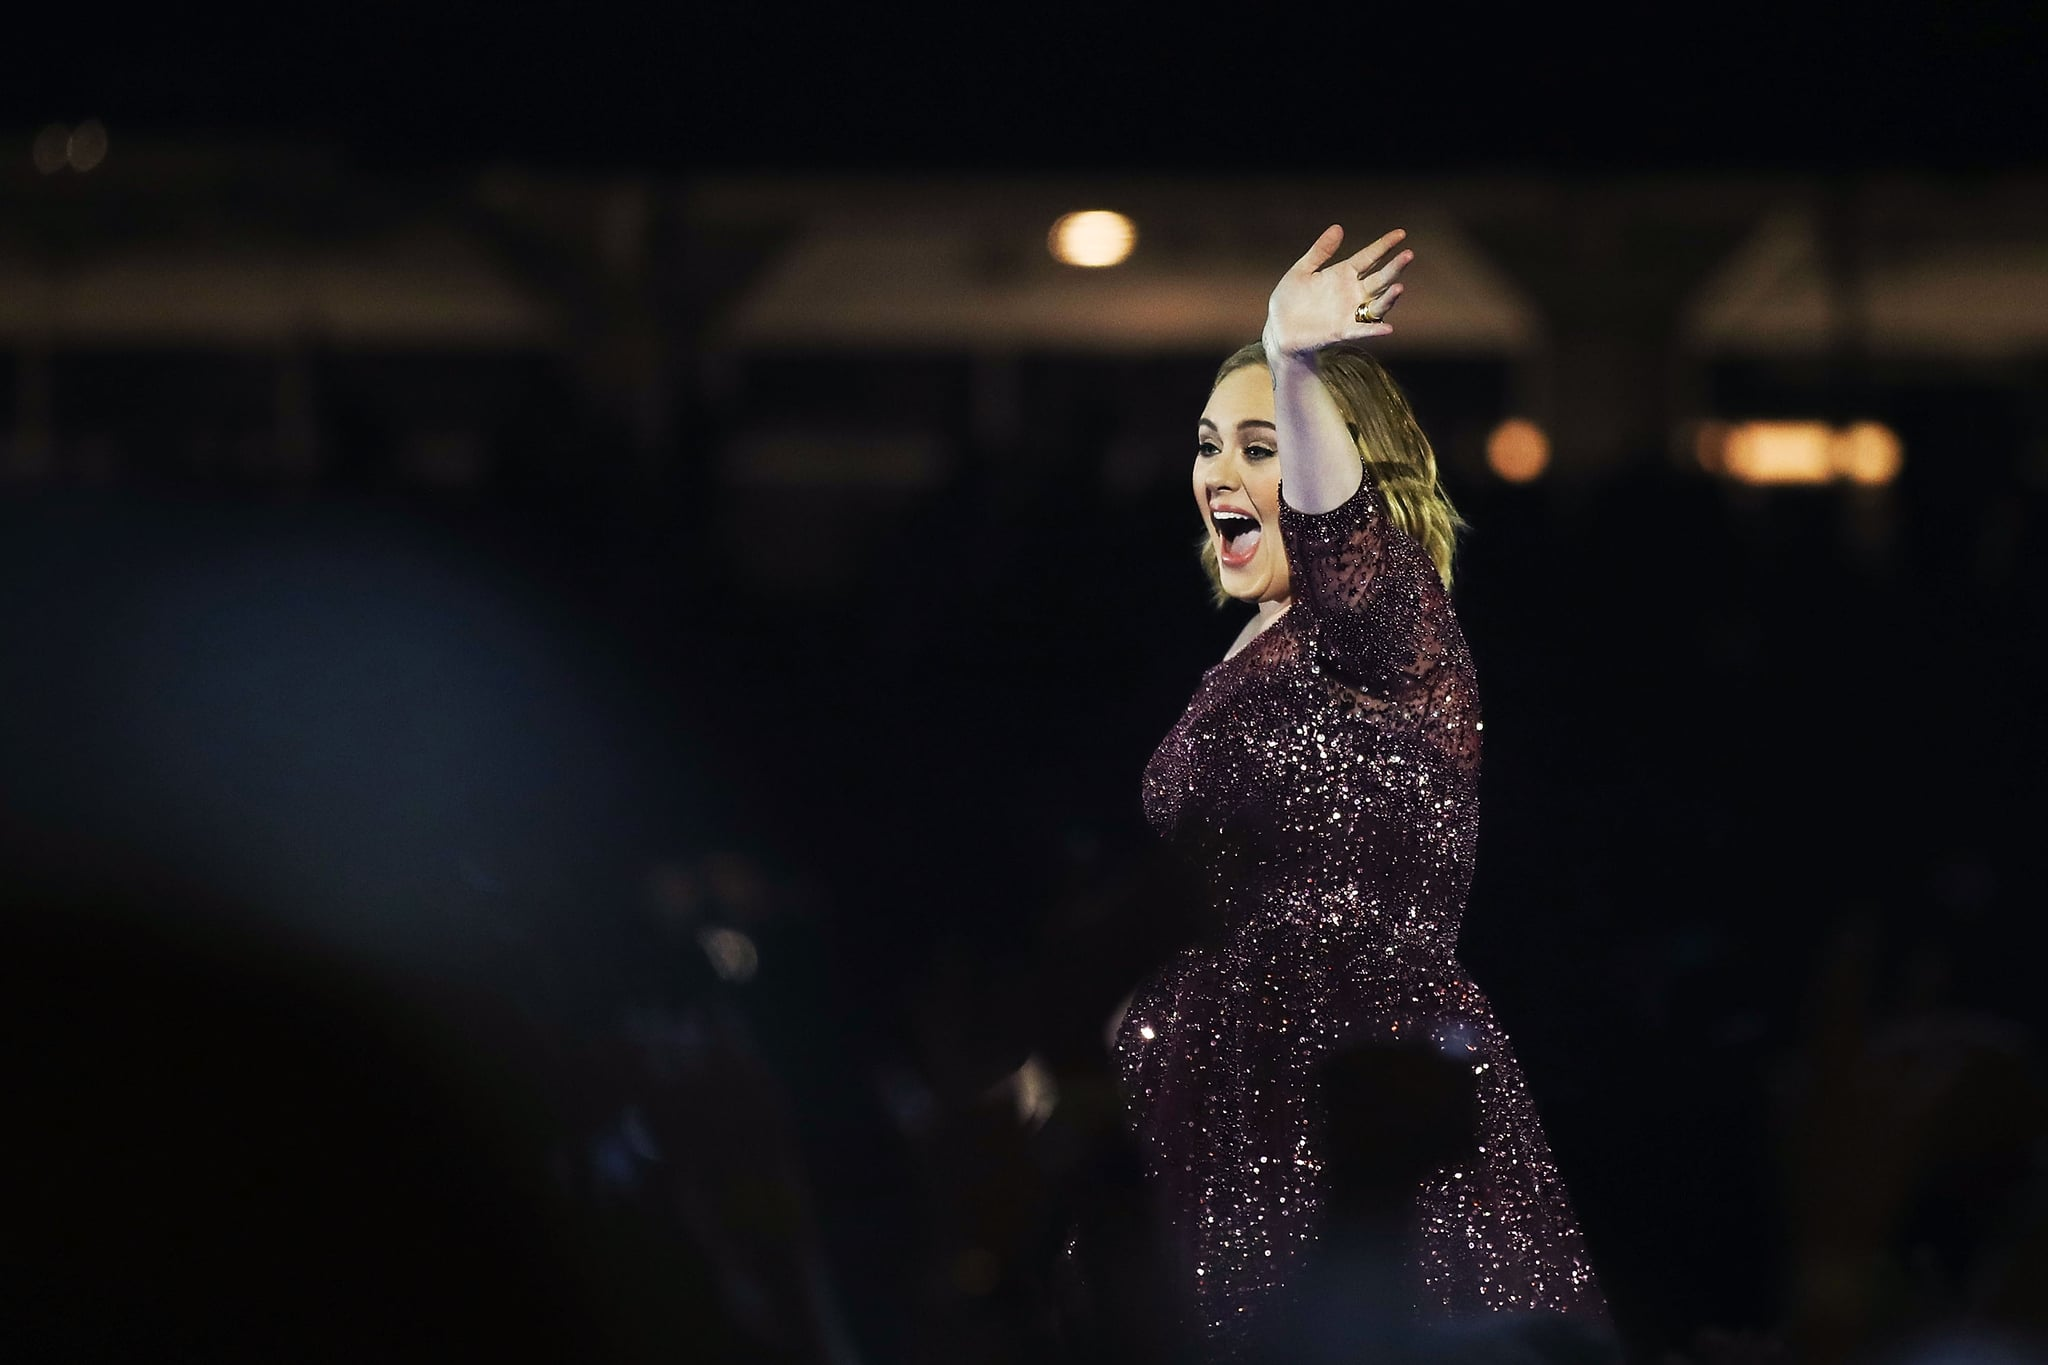 SYDNEY, AUSTRALIA - MARCH 10: Adele performs at ANZ Stadium on March 10, 2017 in Sydney, Australia.  (Photo by Cameron Spencer/Getty Images)